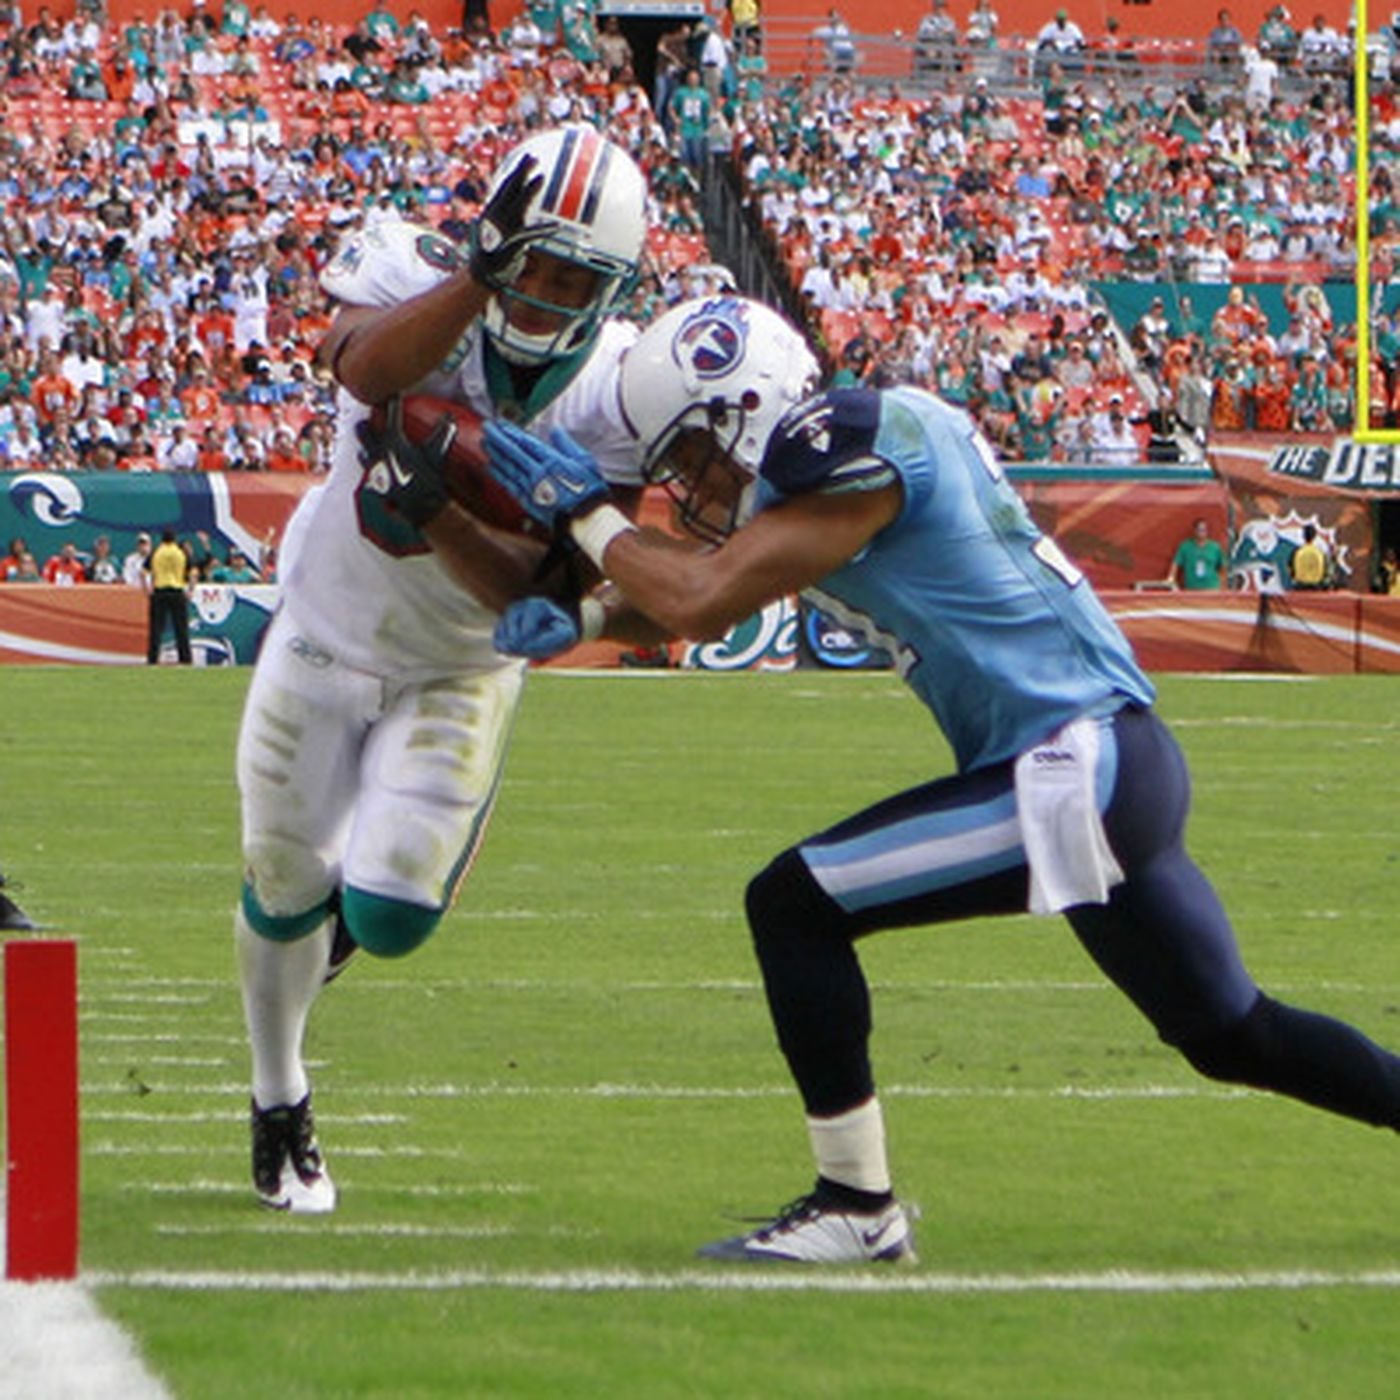 a83b47be Titans at Dolphins: Where to Watch, How to Watch, and What to Watch ...